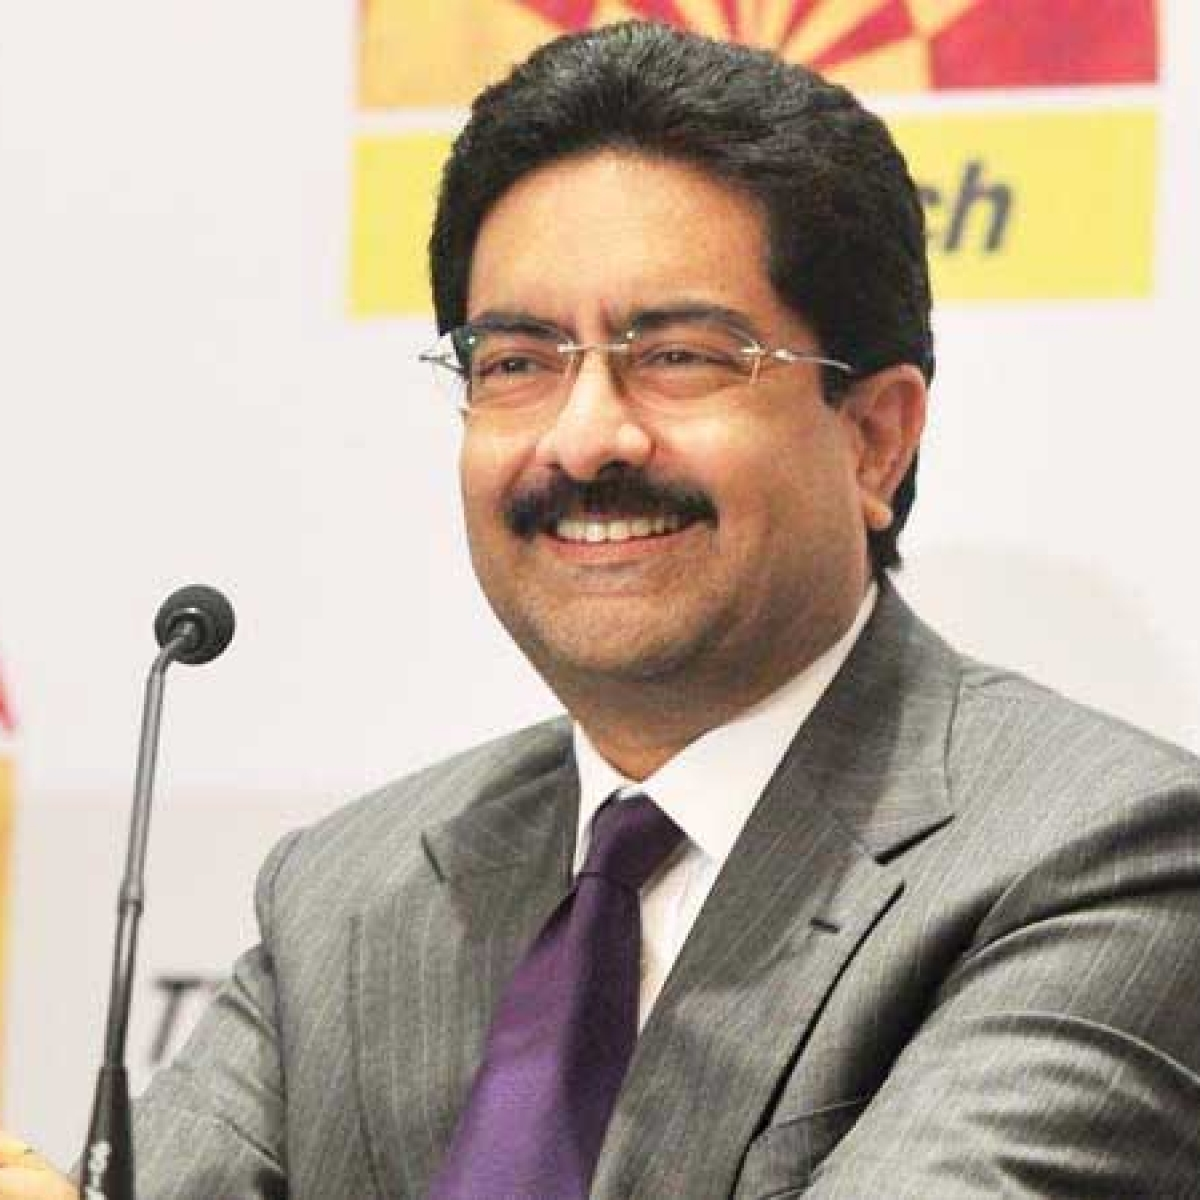 Vodafone Idea will shut in absence of govt relief: Kumar Mangalam Birla